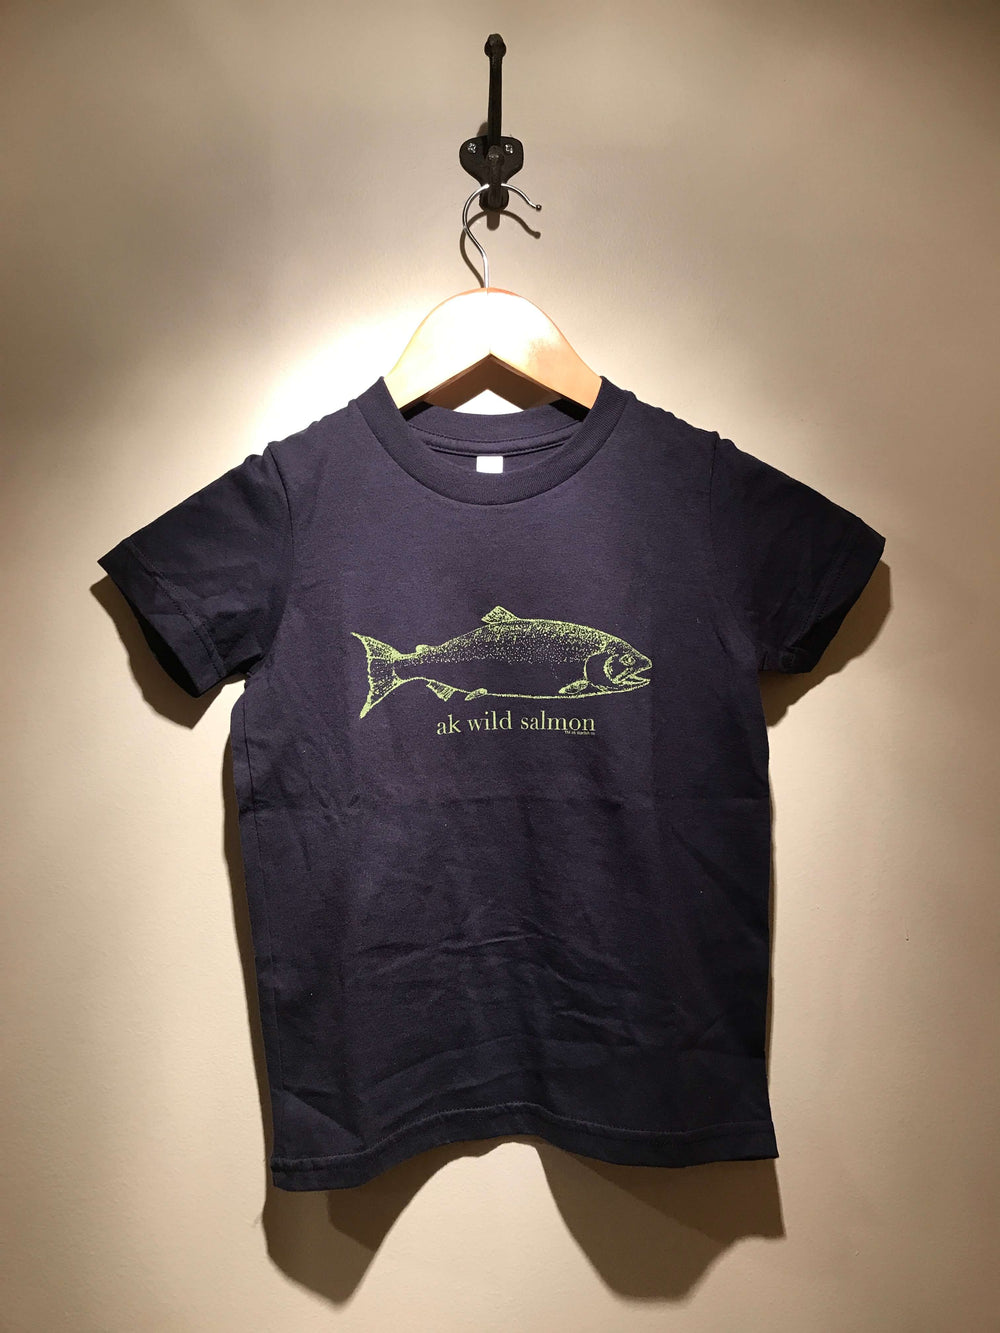 Midnight AK Wild Salmon $25.00